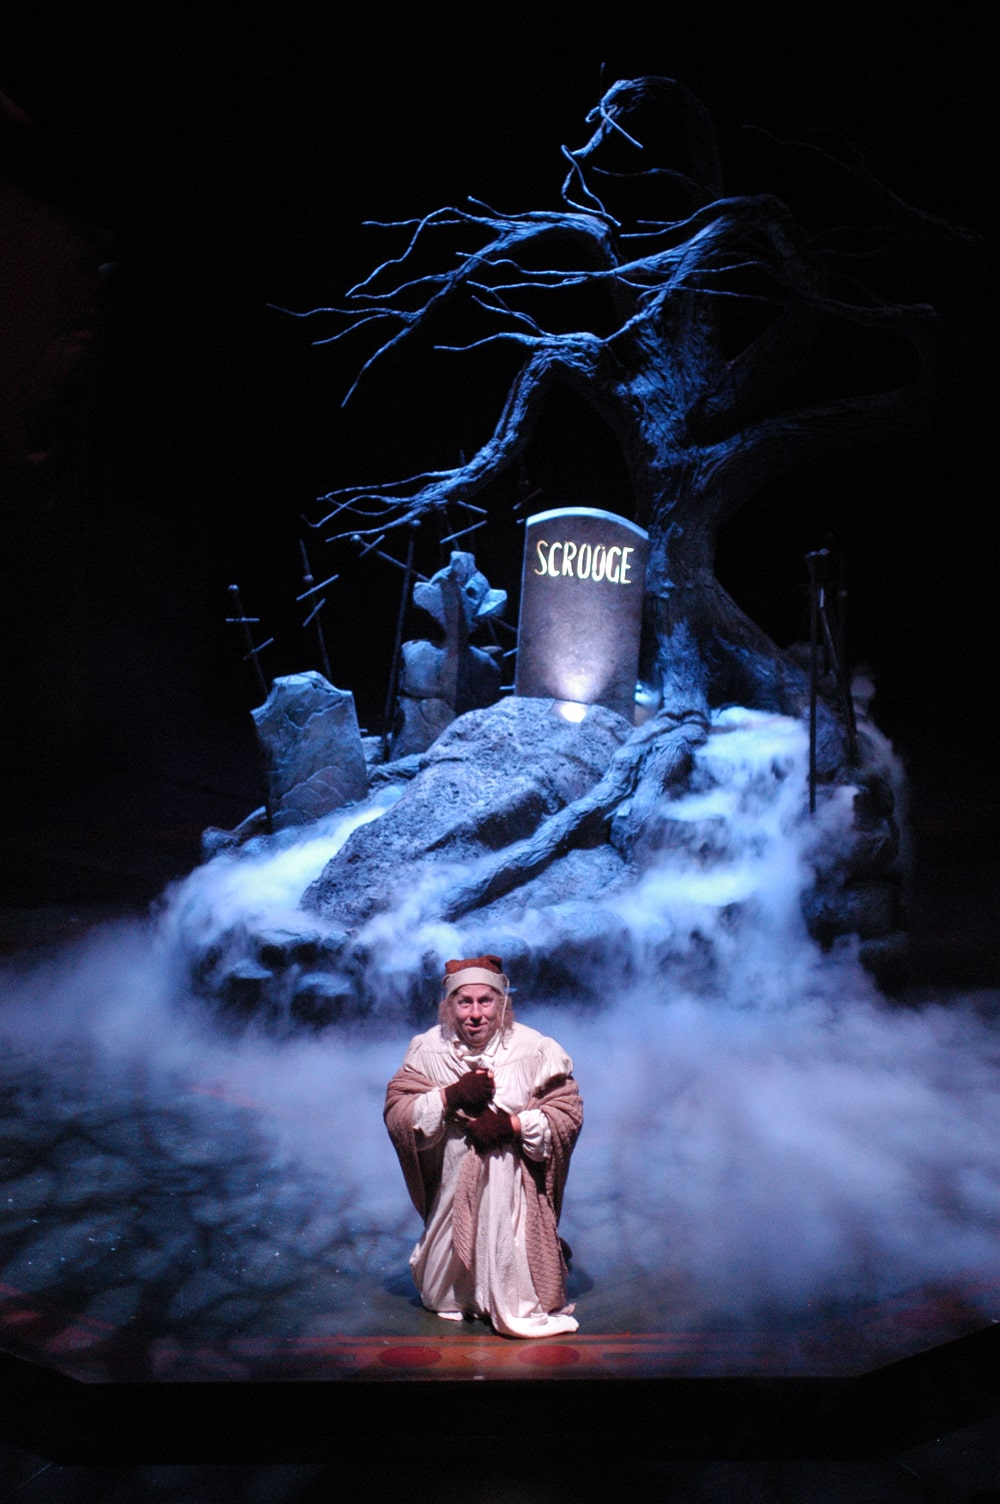 Man in nightclothes kneels on smoke-filled stage in front of his gravestone under a tree.